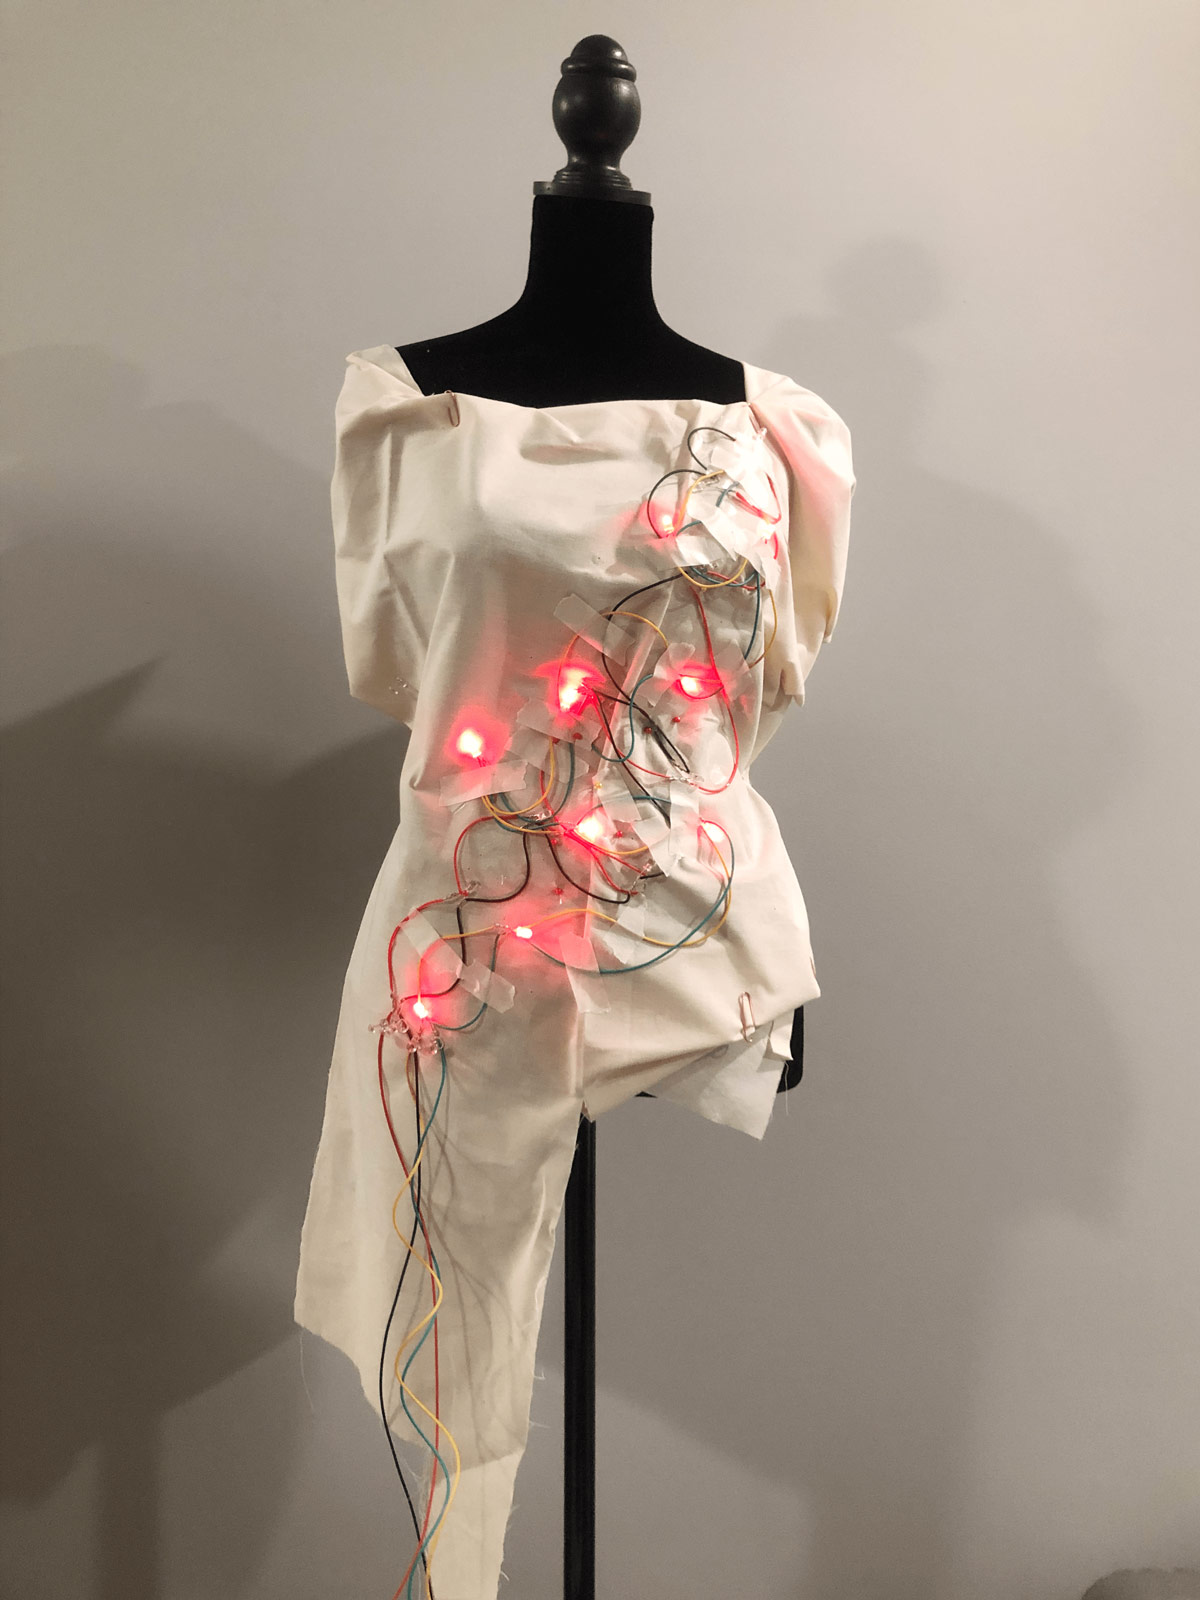 garment is lit up with red lights